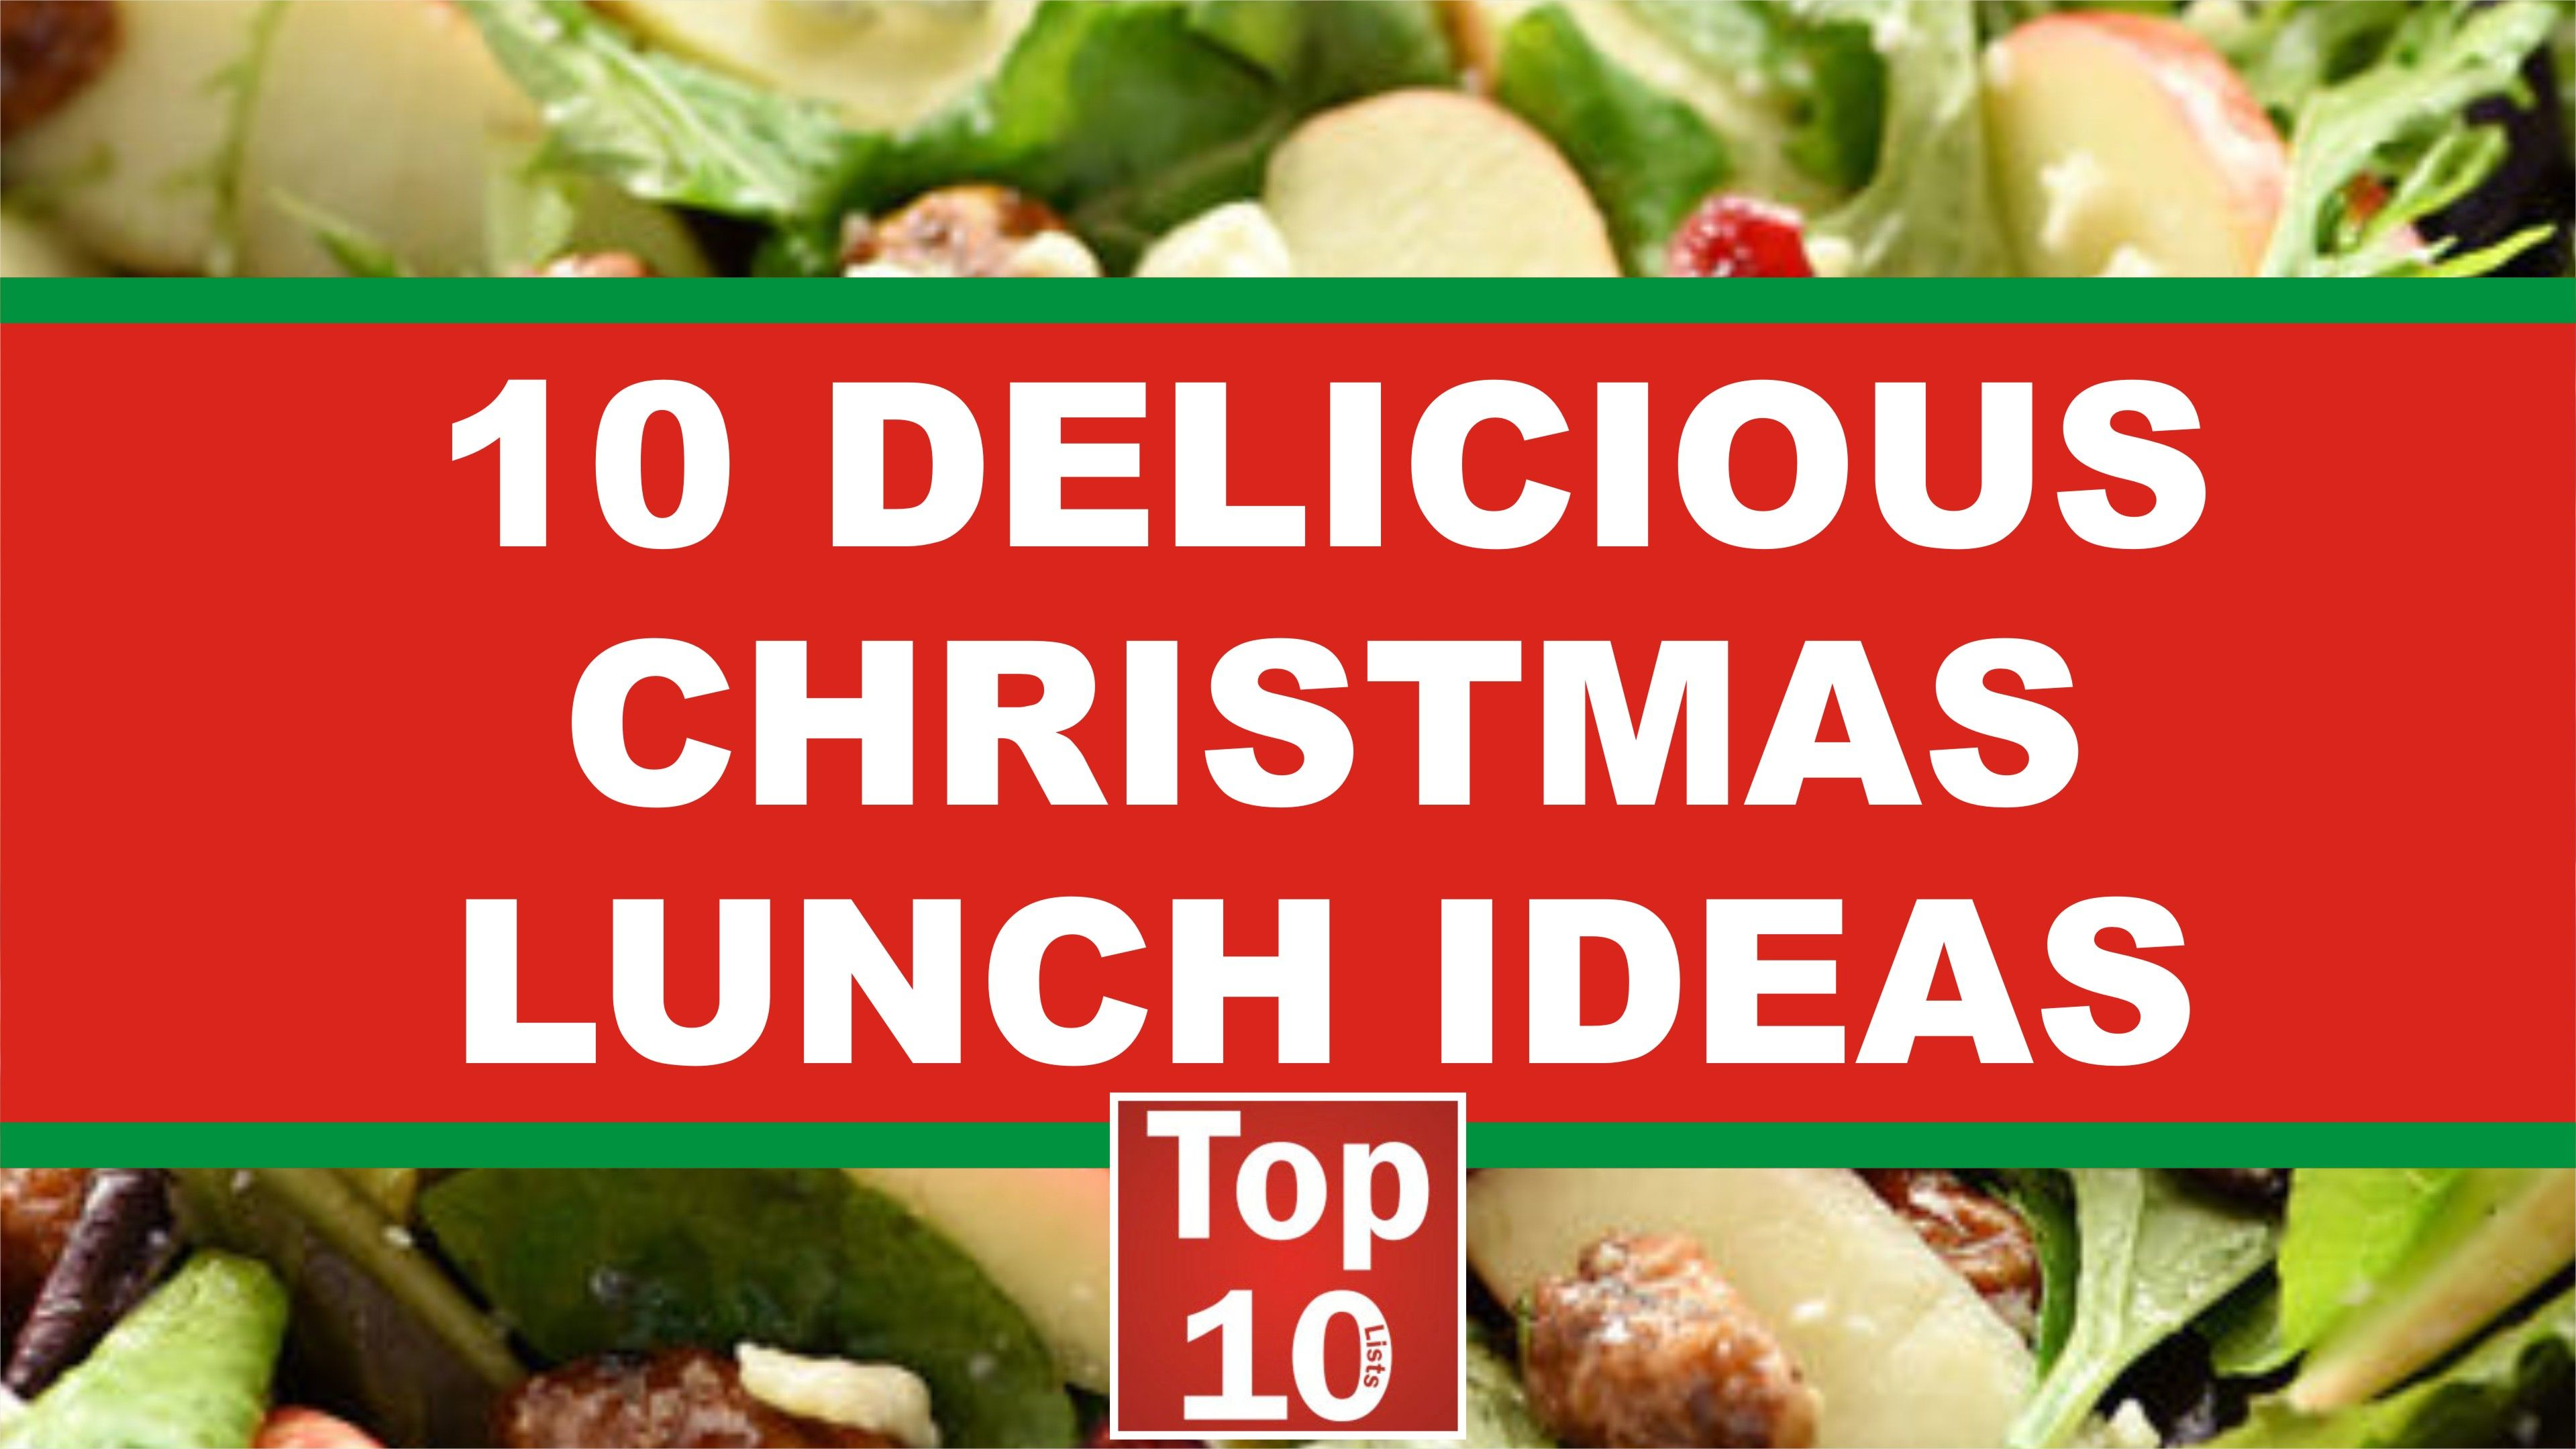 Christmas Lunch Ideas: Top 10 Delicious Recipe (2018) | Top 10